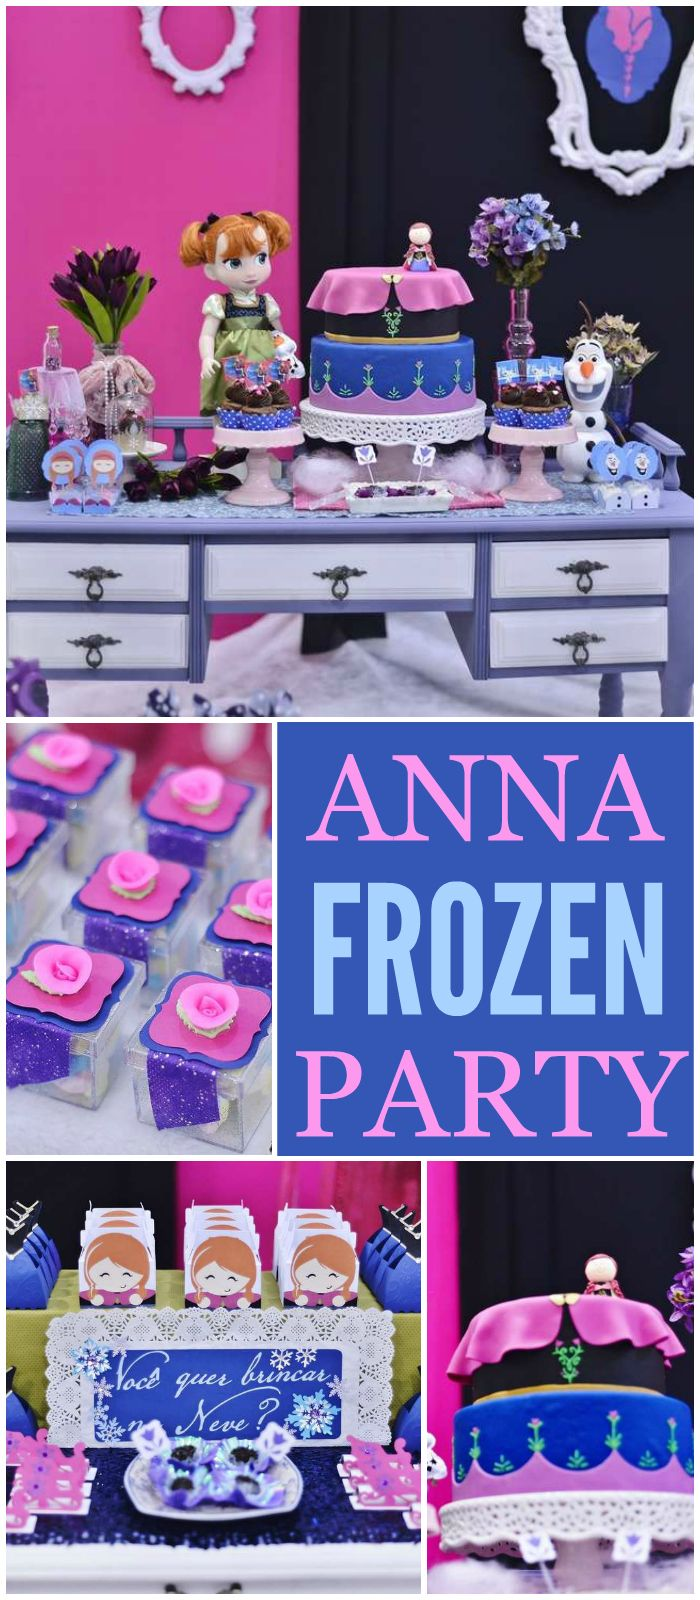 This fabulous Frozen birthday party features Anna!